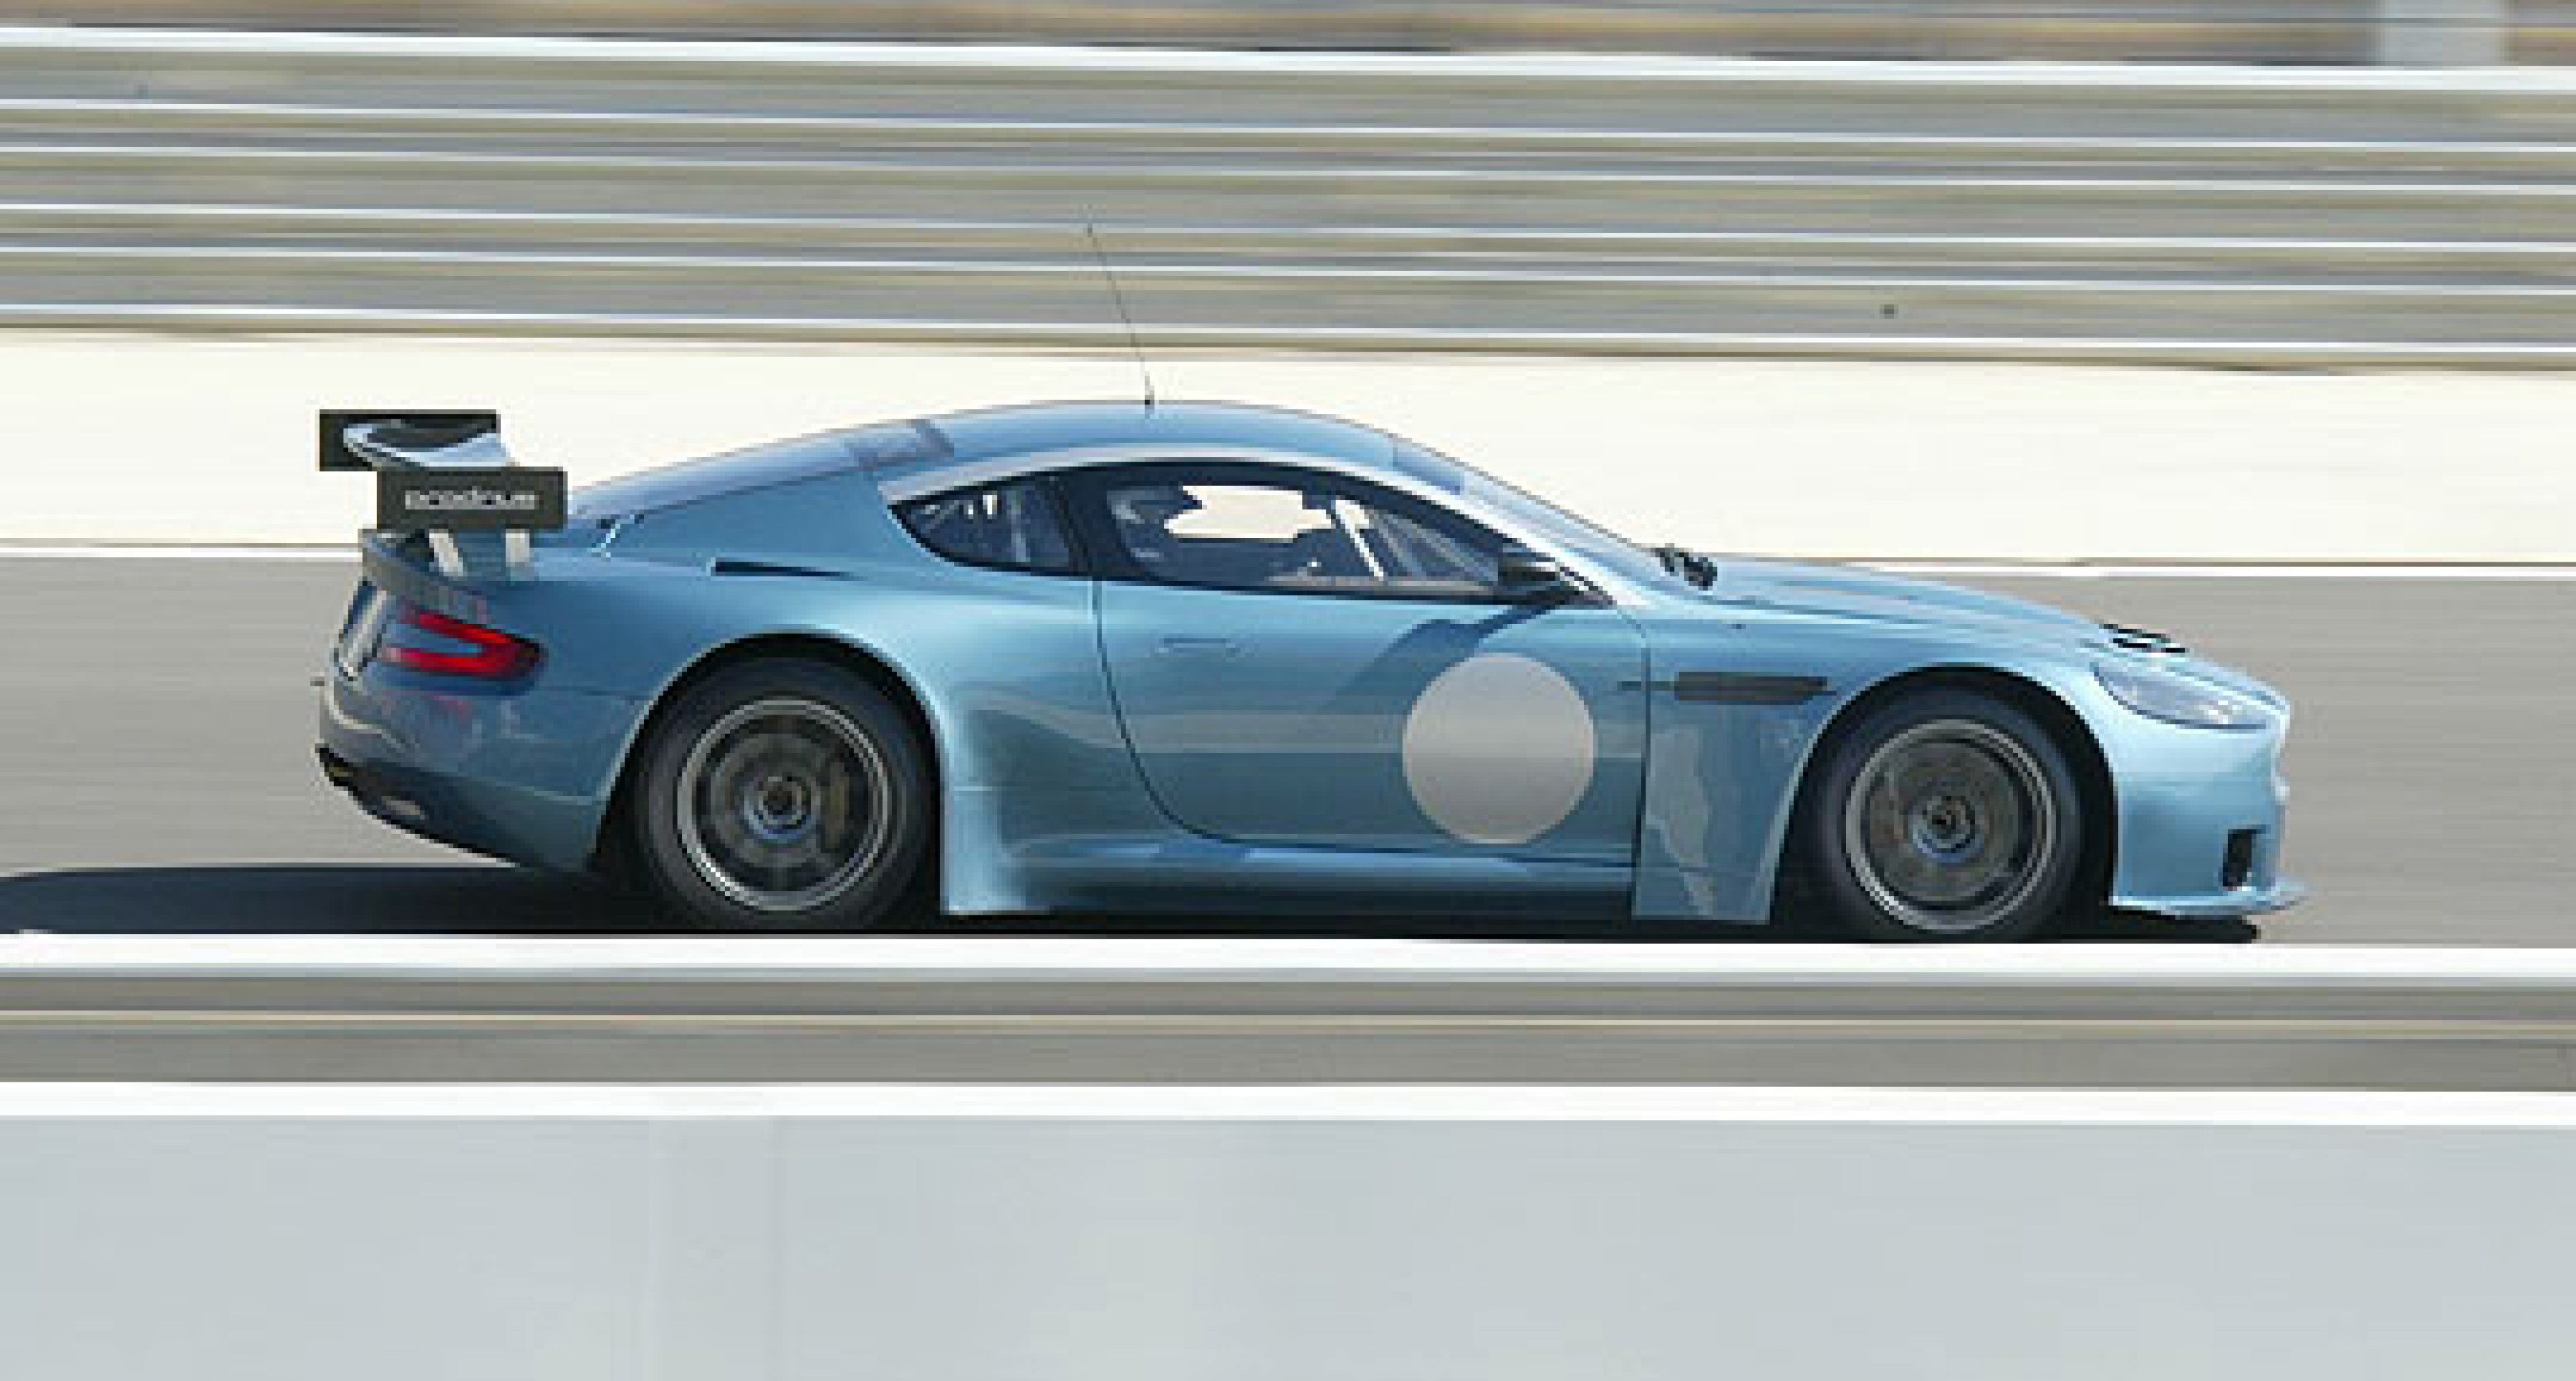 Aston Martin DBRS9s to race at Sebring in March